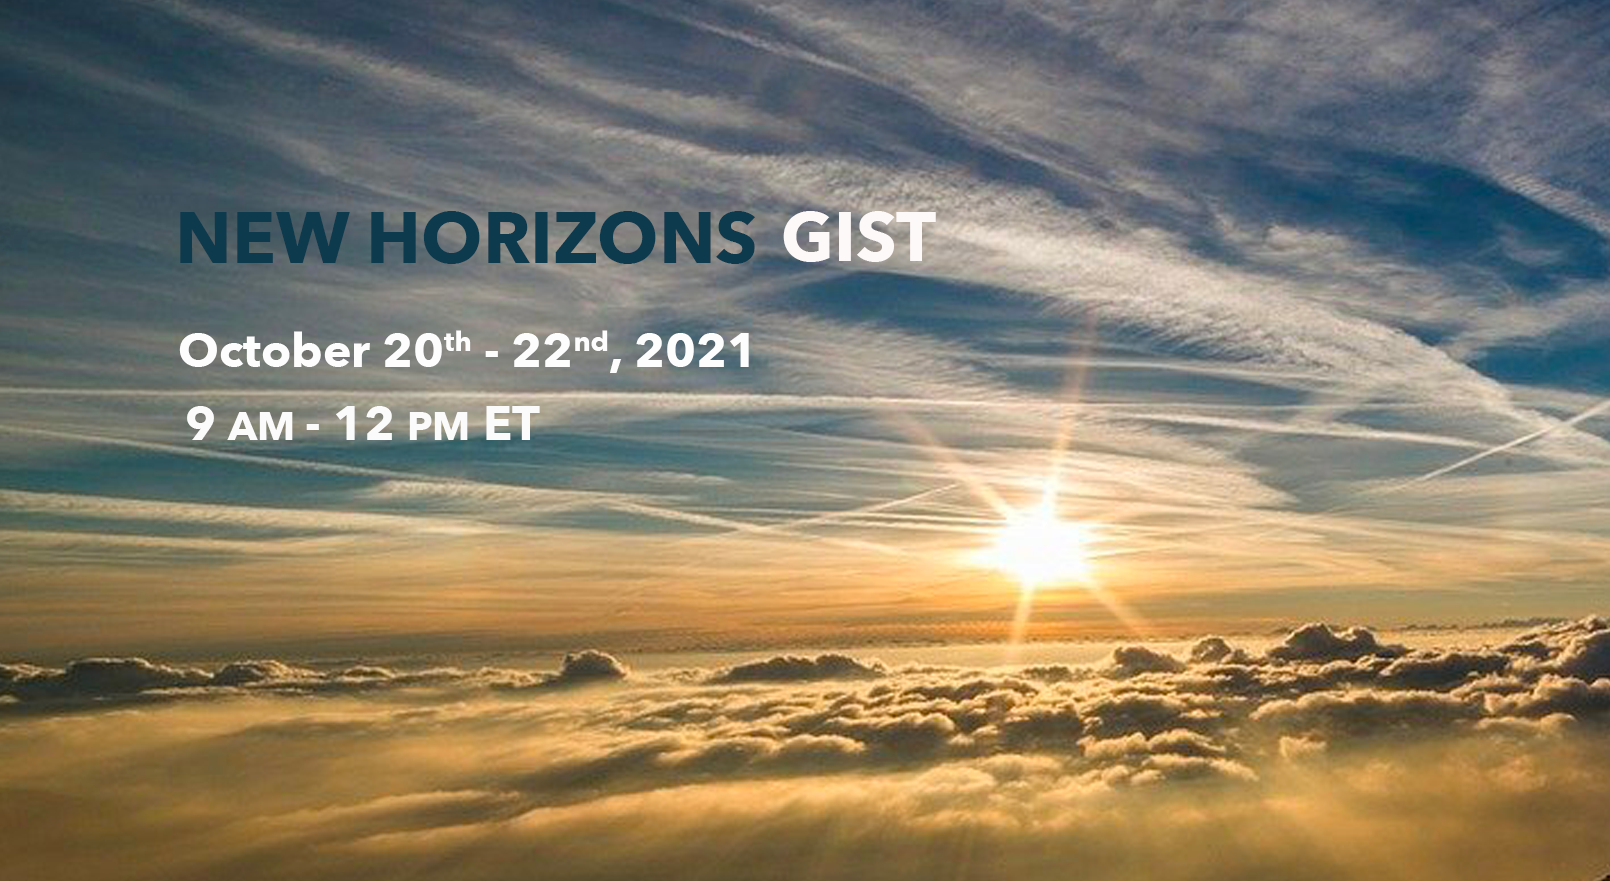 New Horizons 2021 conference